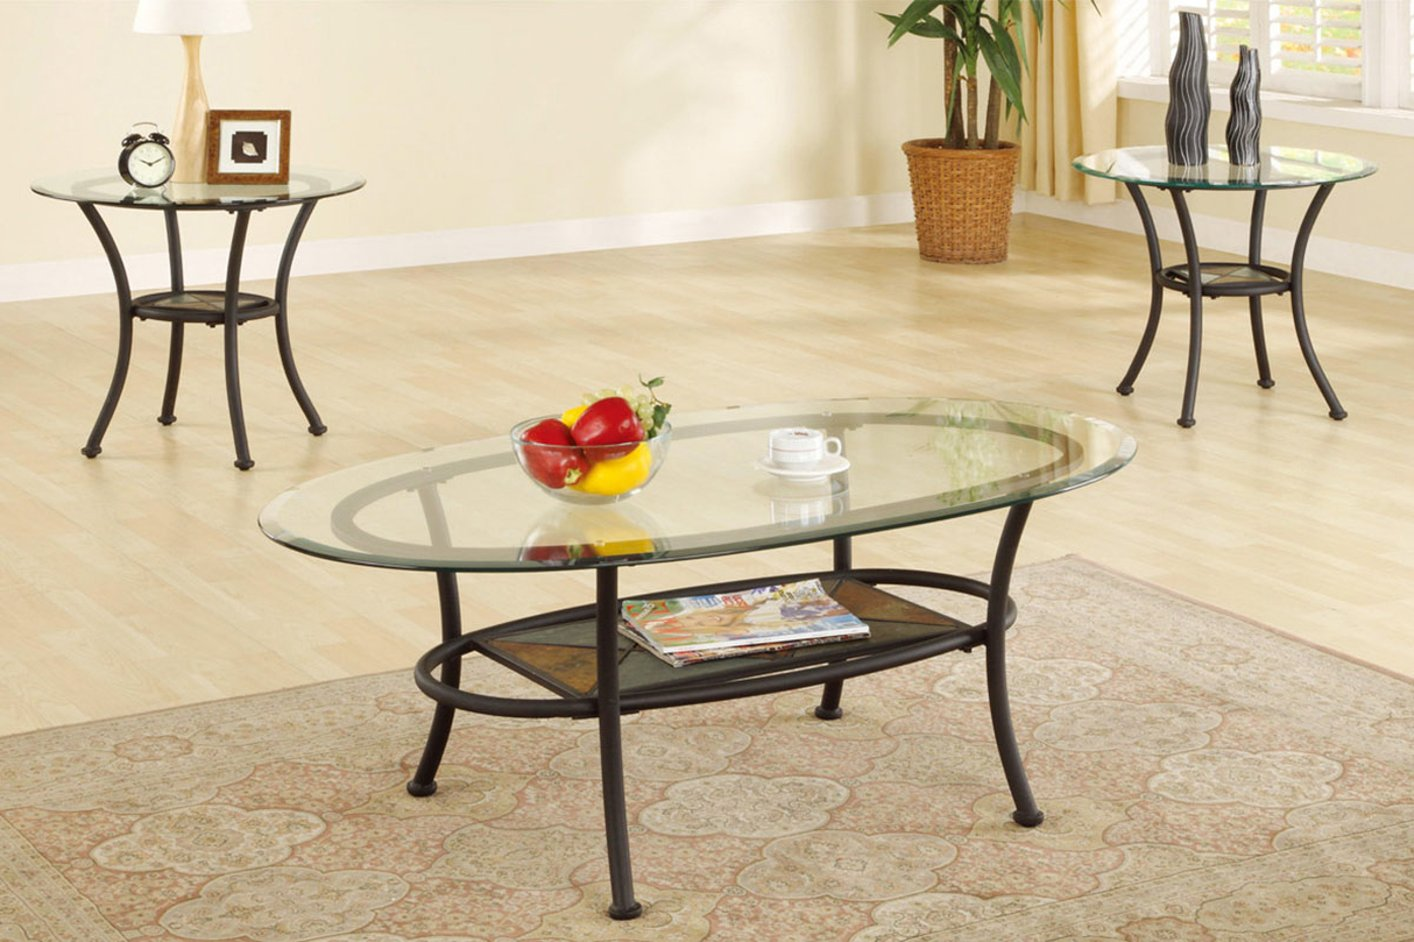 Black Glass Coffee Table Set StealASofa Furniture Outlet Los